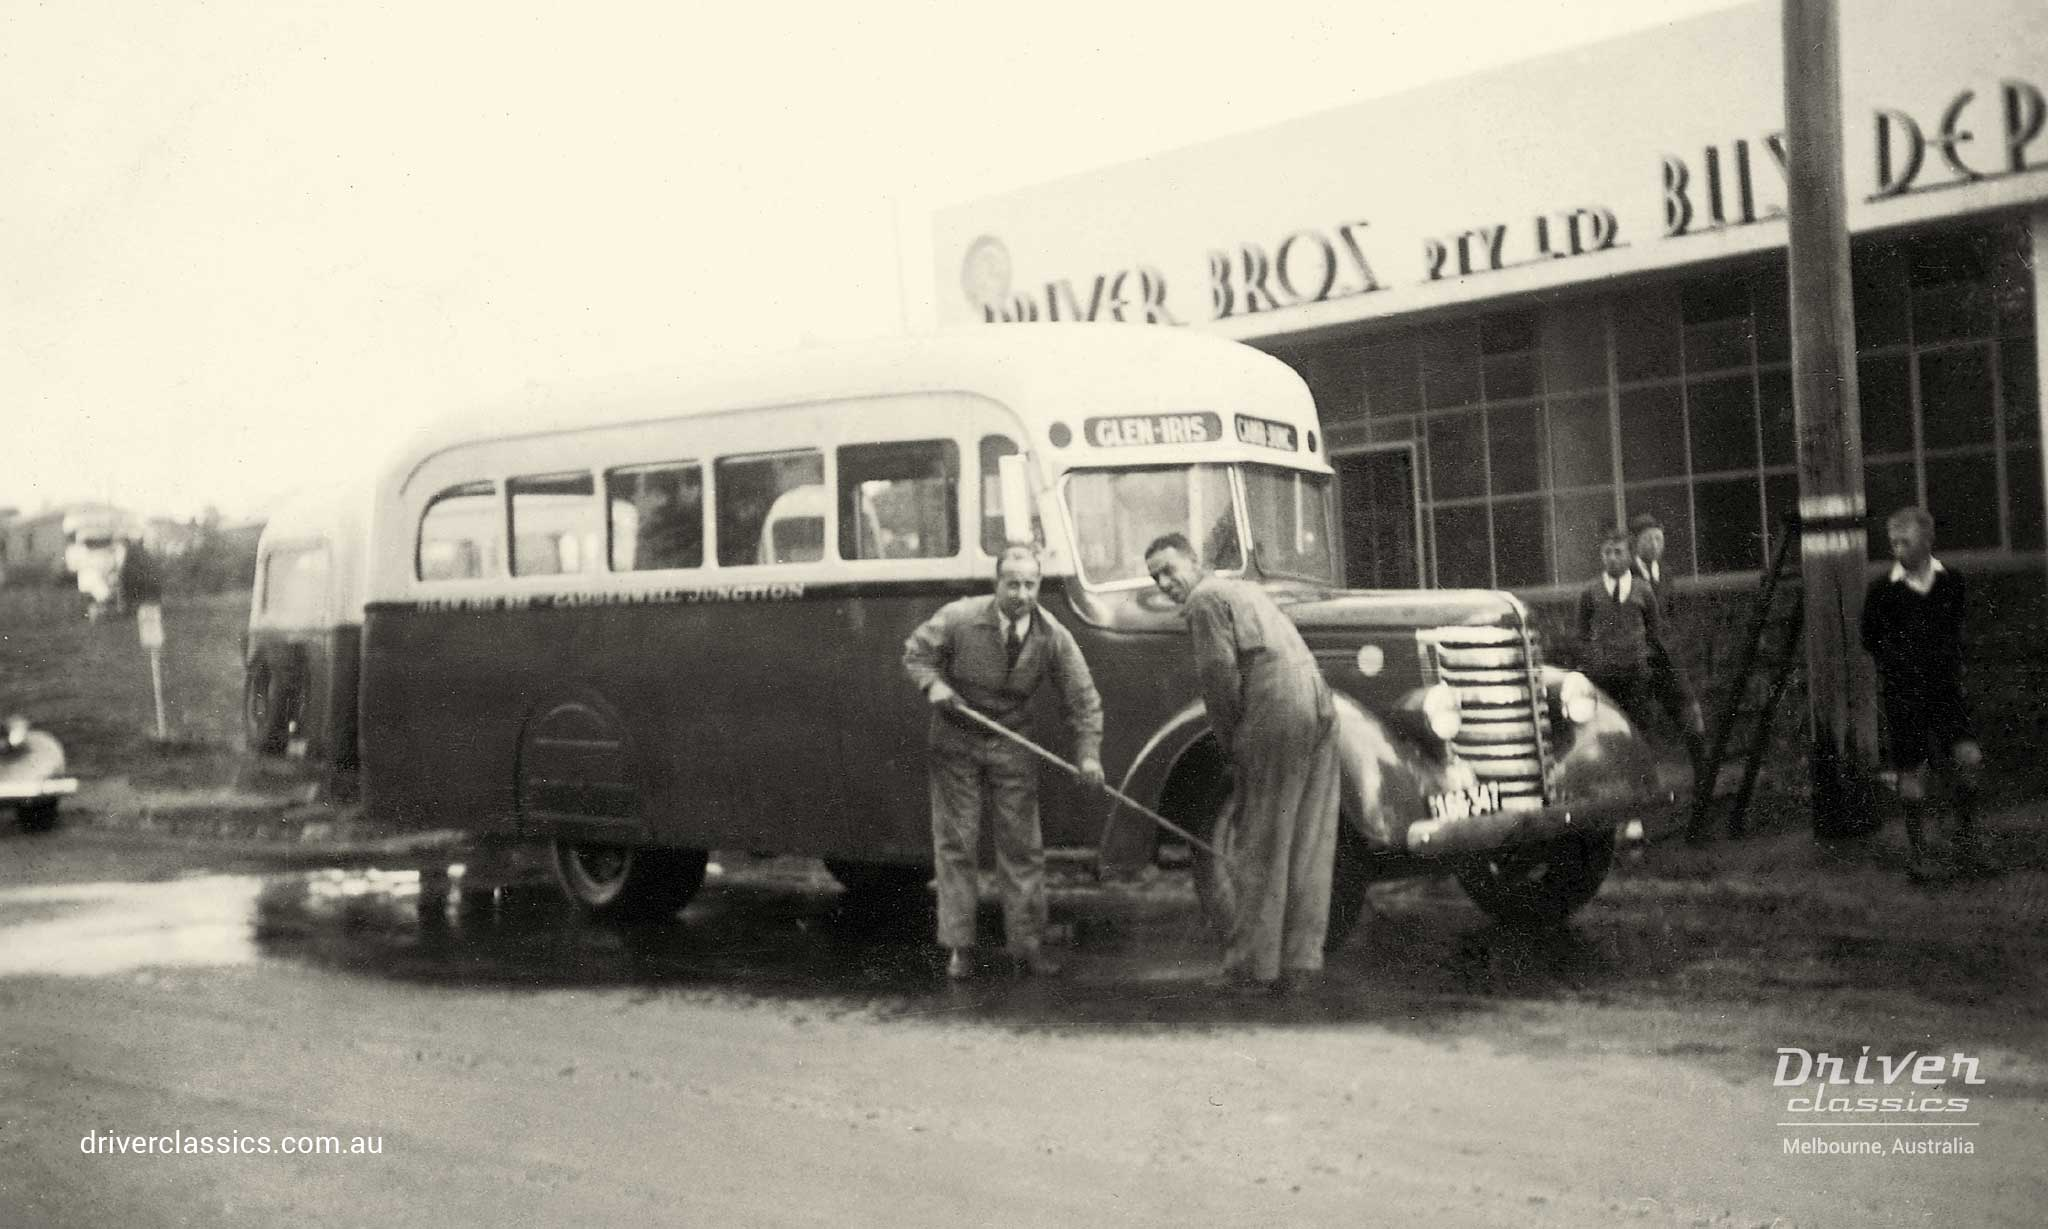 Federal Bus, with Martin & King 19 passenger body, being washed by Driver Brothers, photo taken early 1940s.